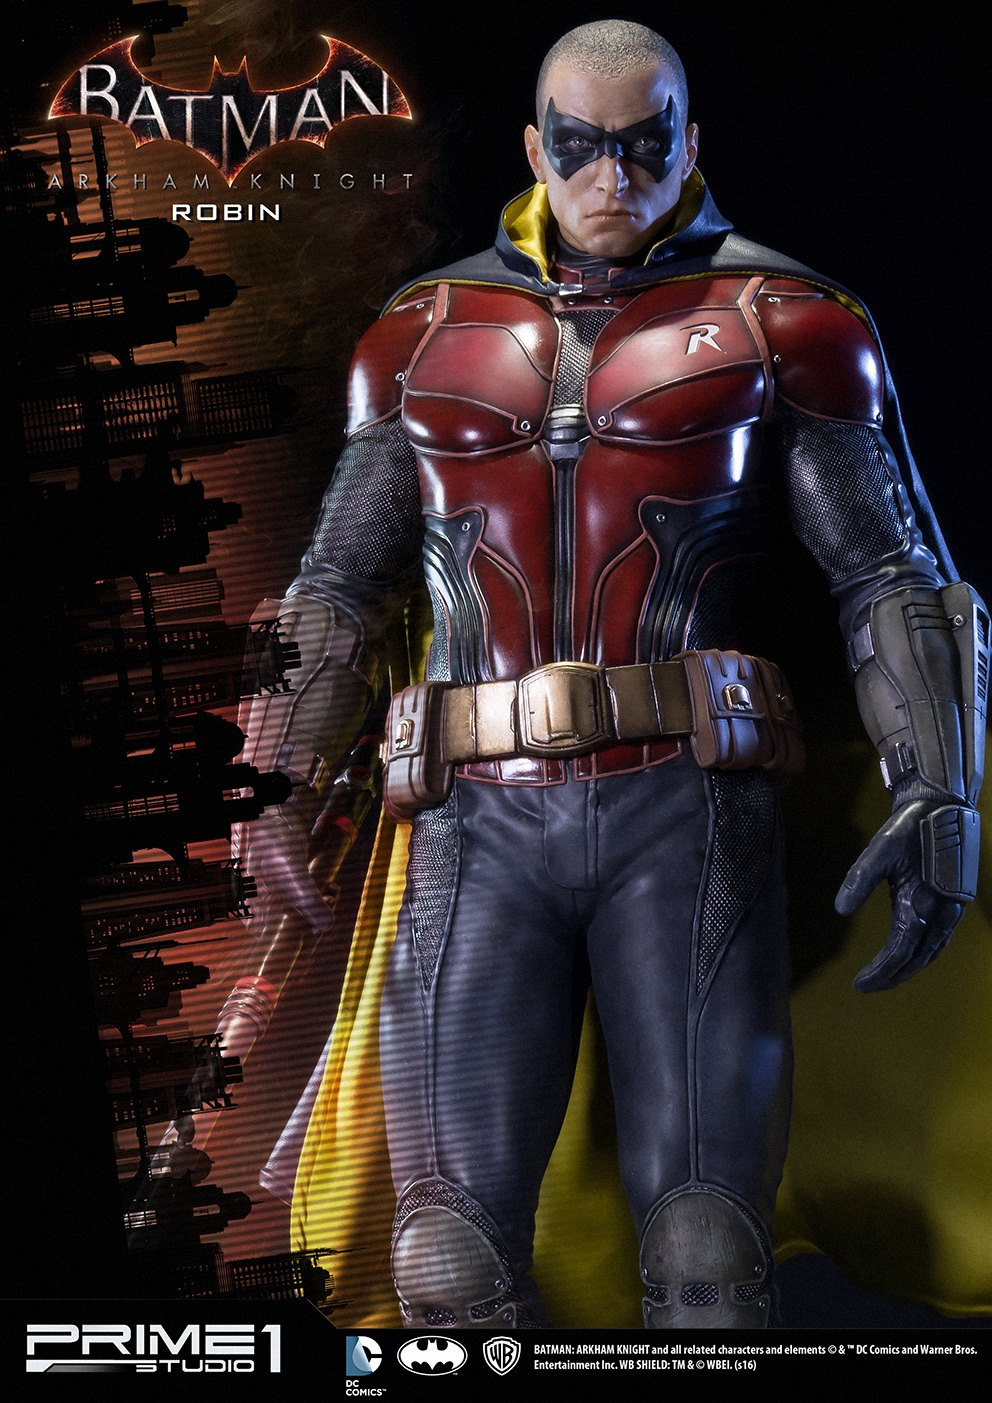 Batman arkham knight robin